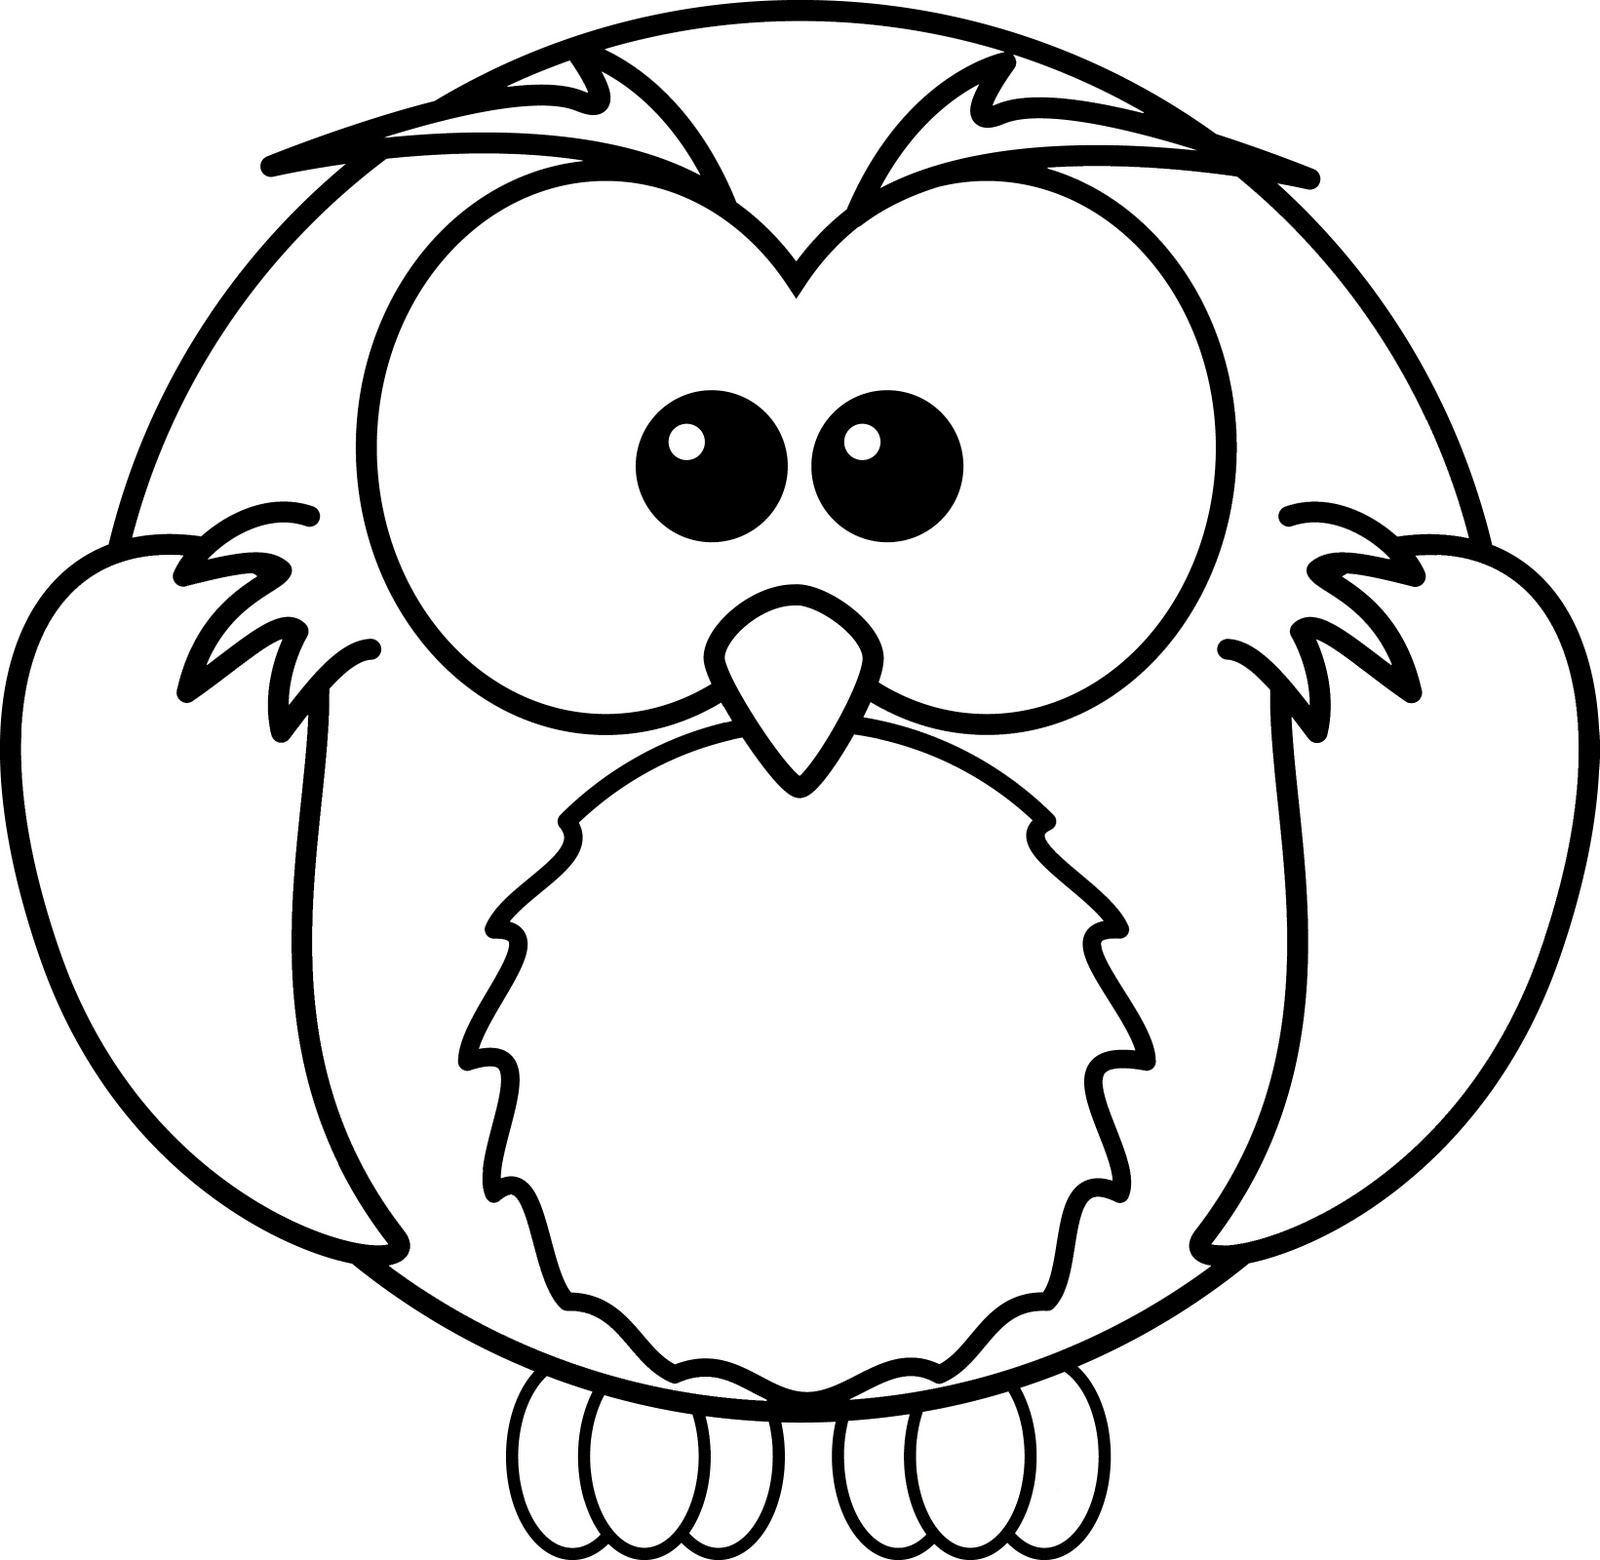 coloring owls ideas pattern ideas guide patterns free simple owl drawings owls coloring ideas